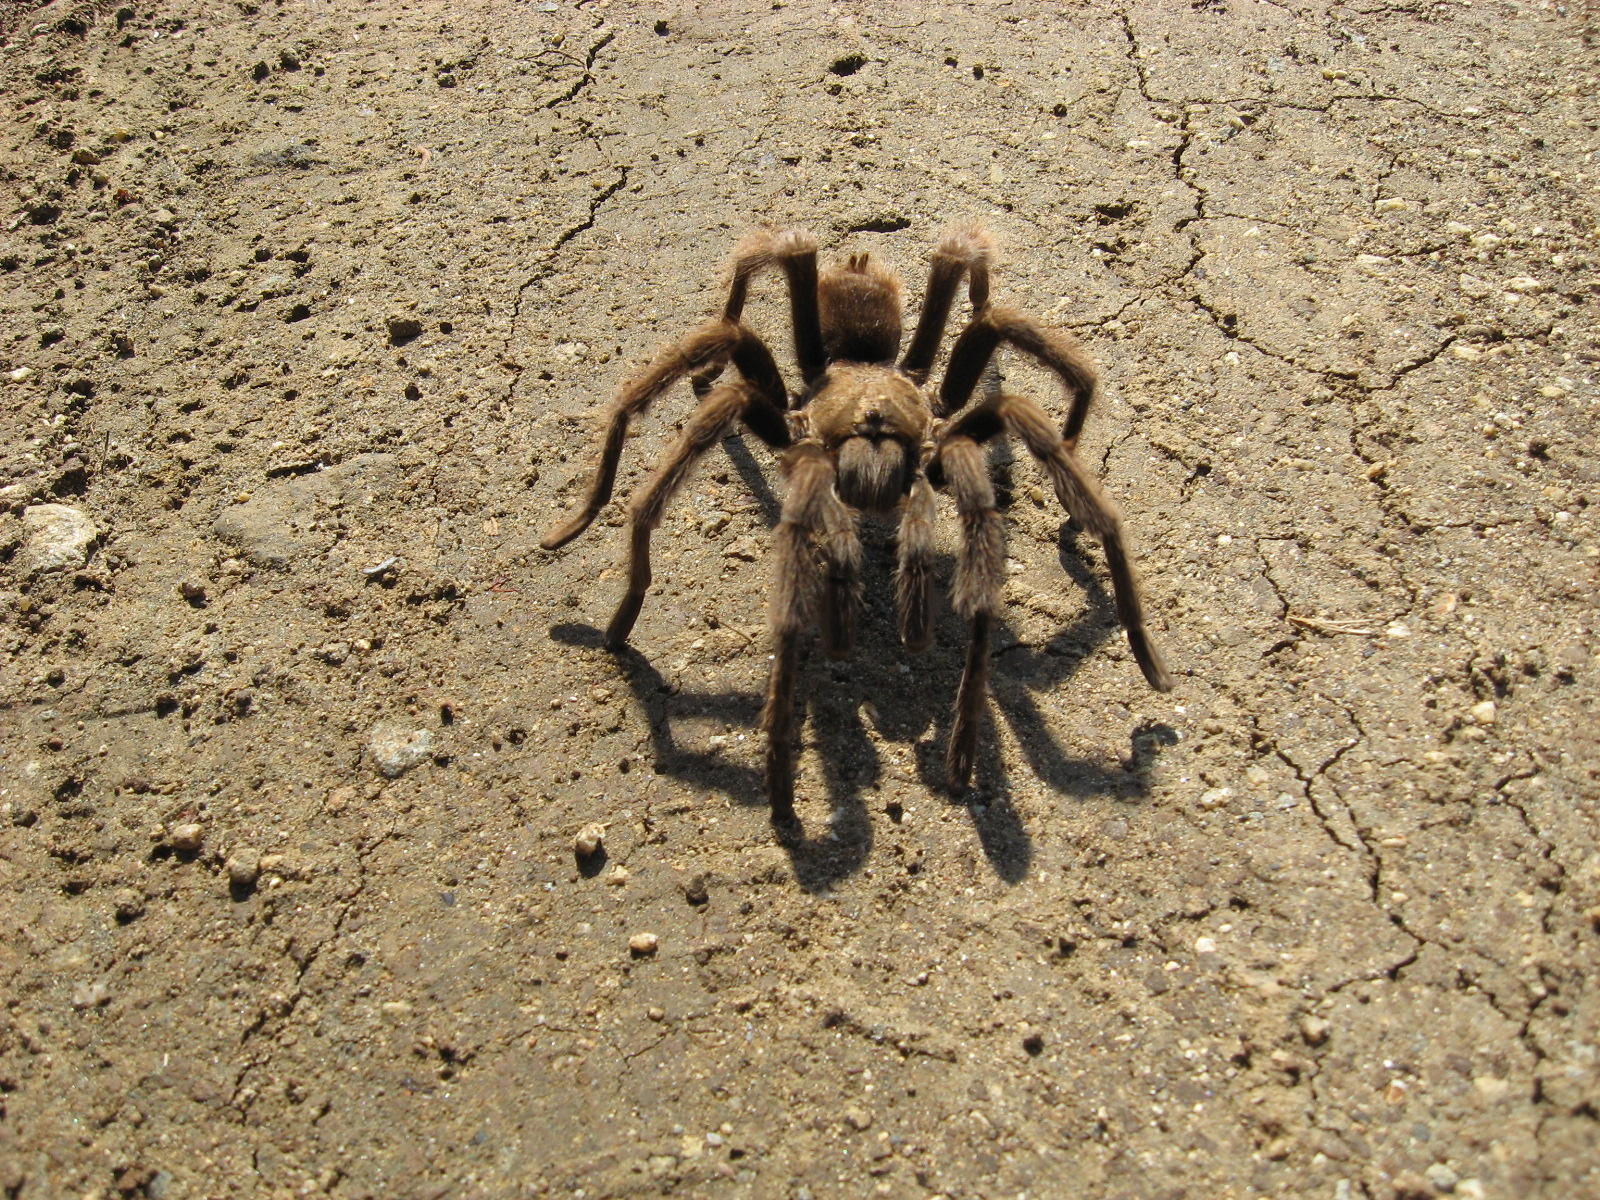 Tarantula on dry soil